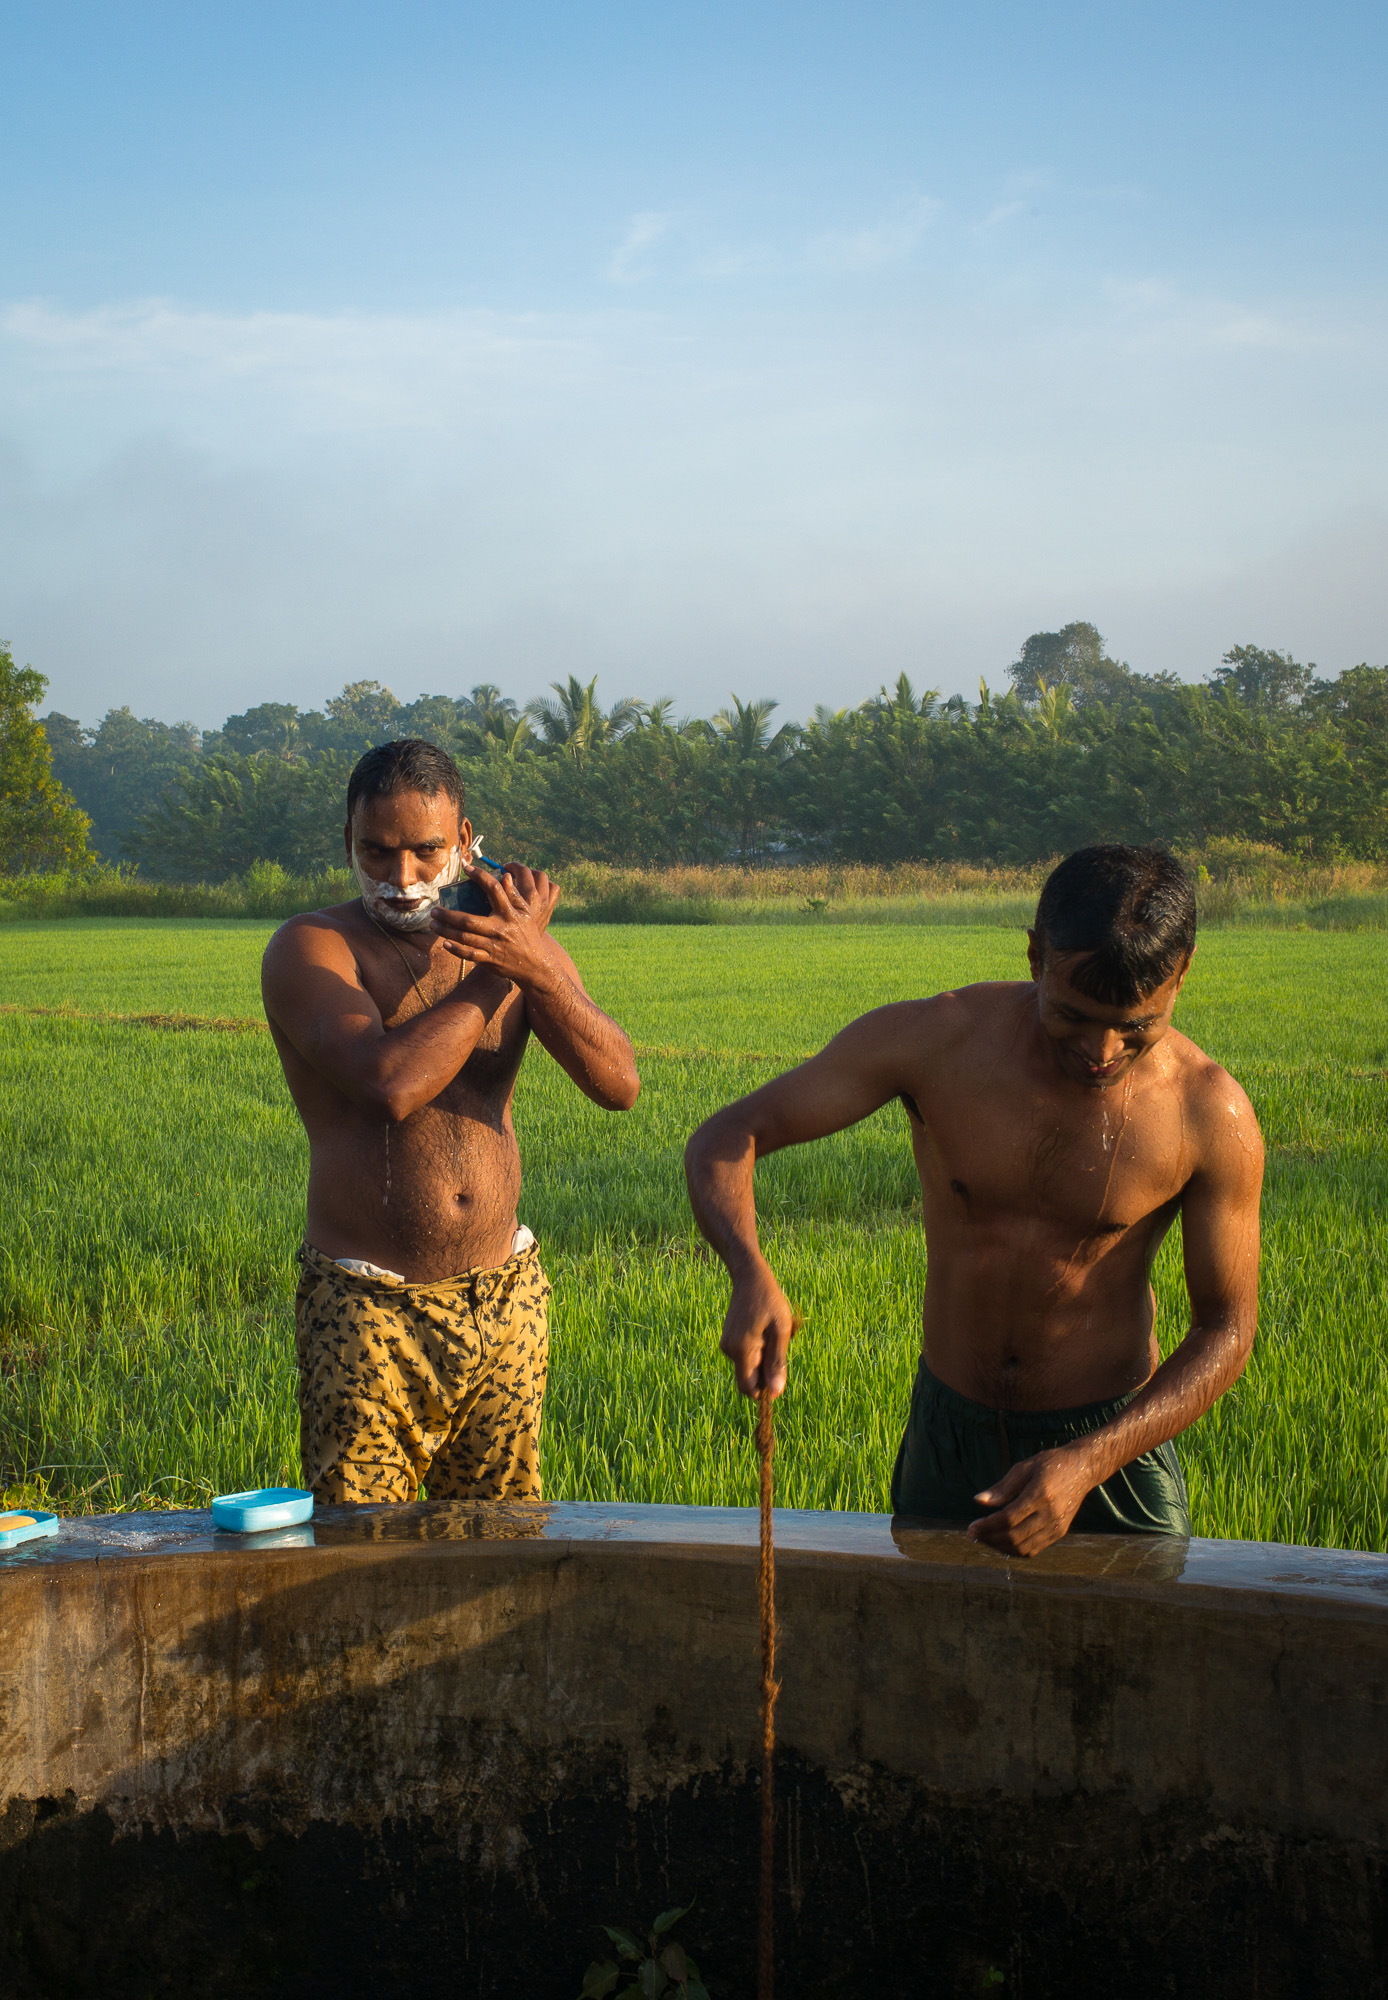 Men bathing in the morning light, Kurunegala, North Western Province